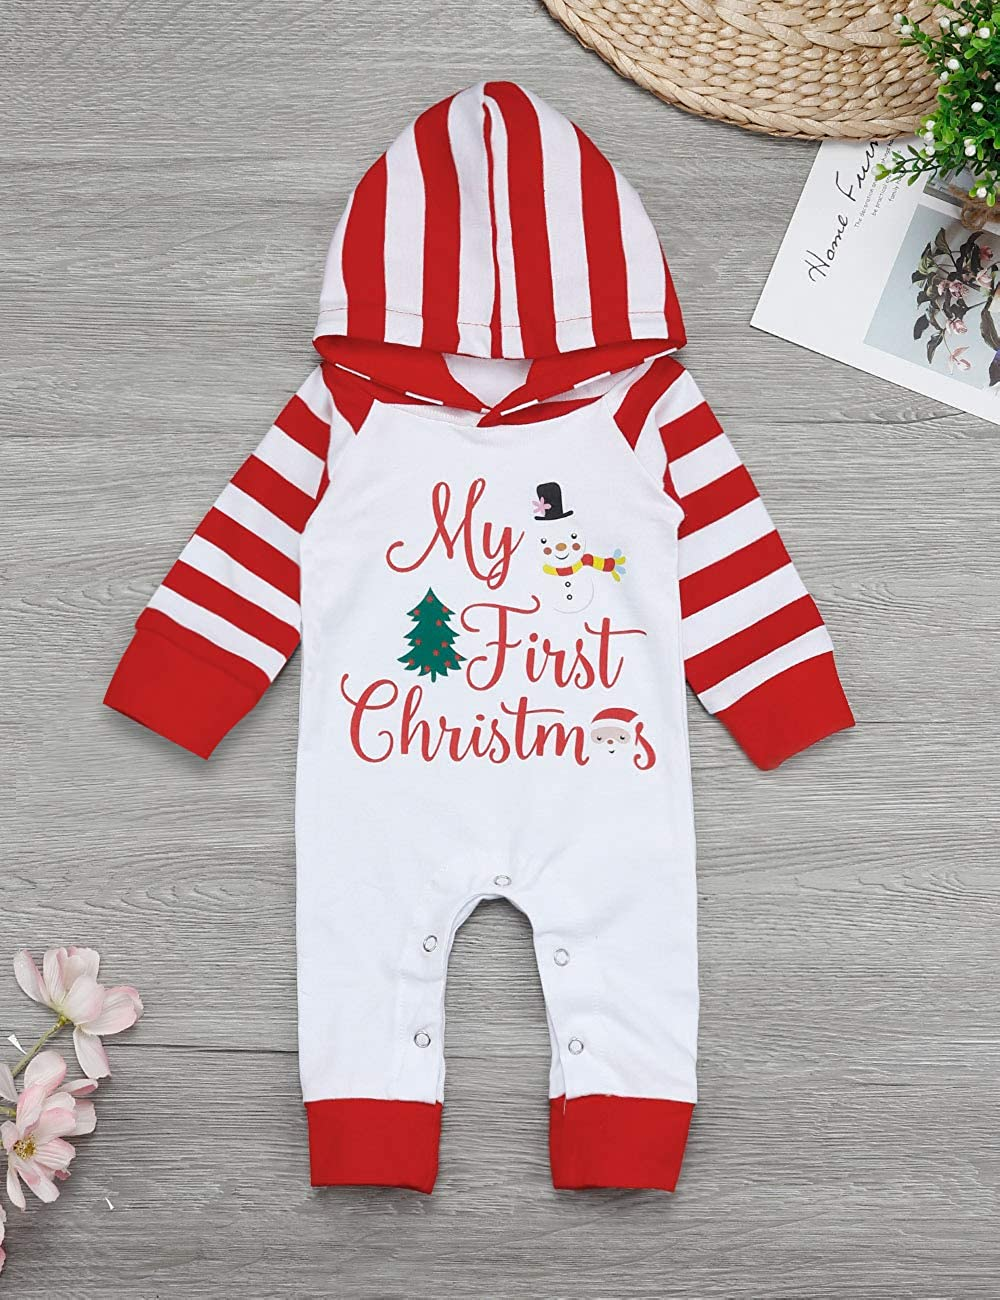 Yiner Baby Christmas Outfits Newborn Baby Boy Girls My First Christmas Romper Hoodie Printing Jumpsuit Pajamas